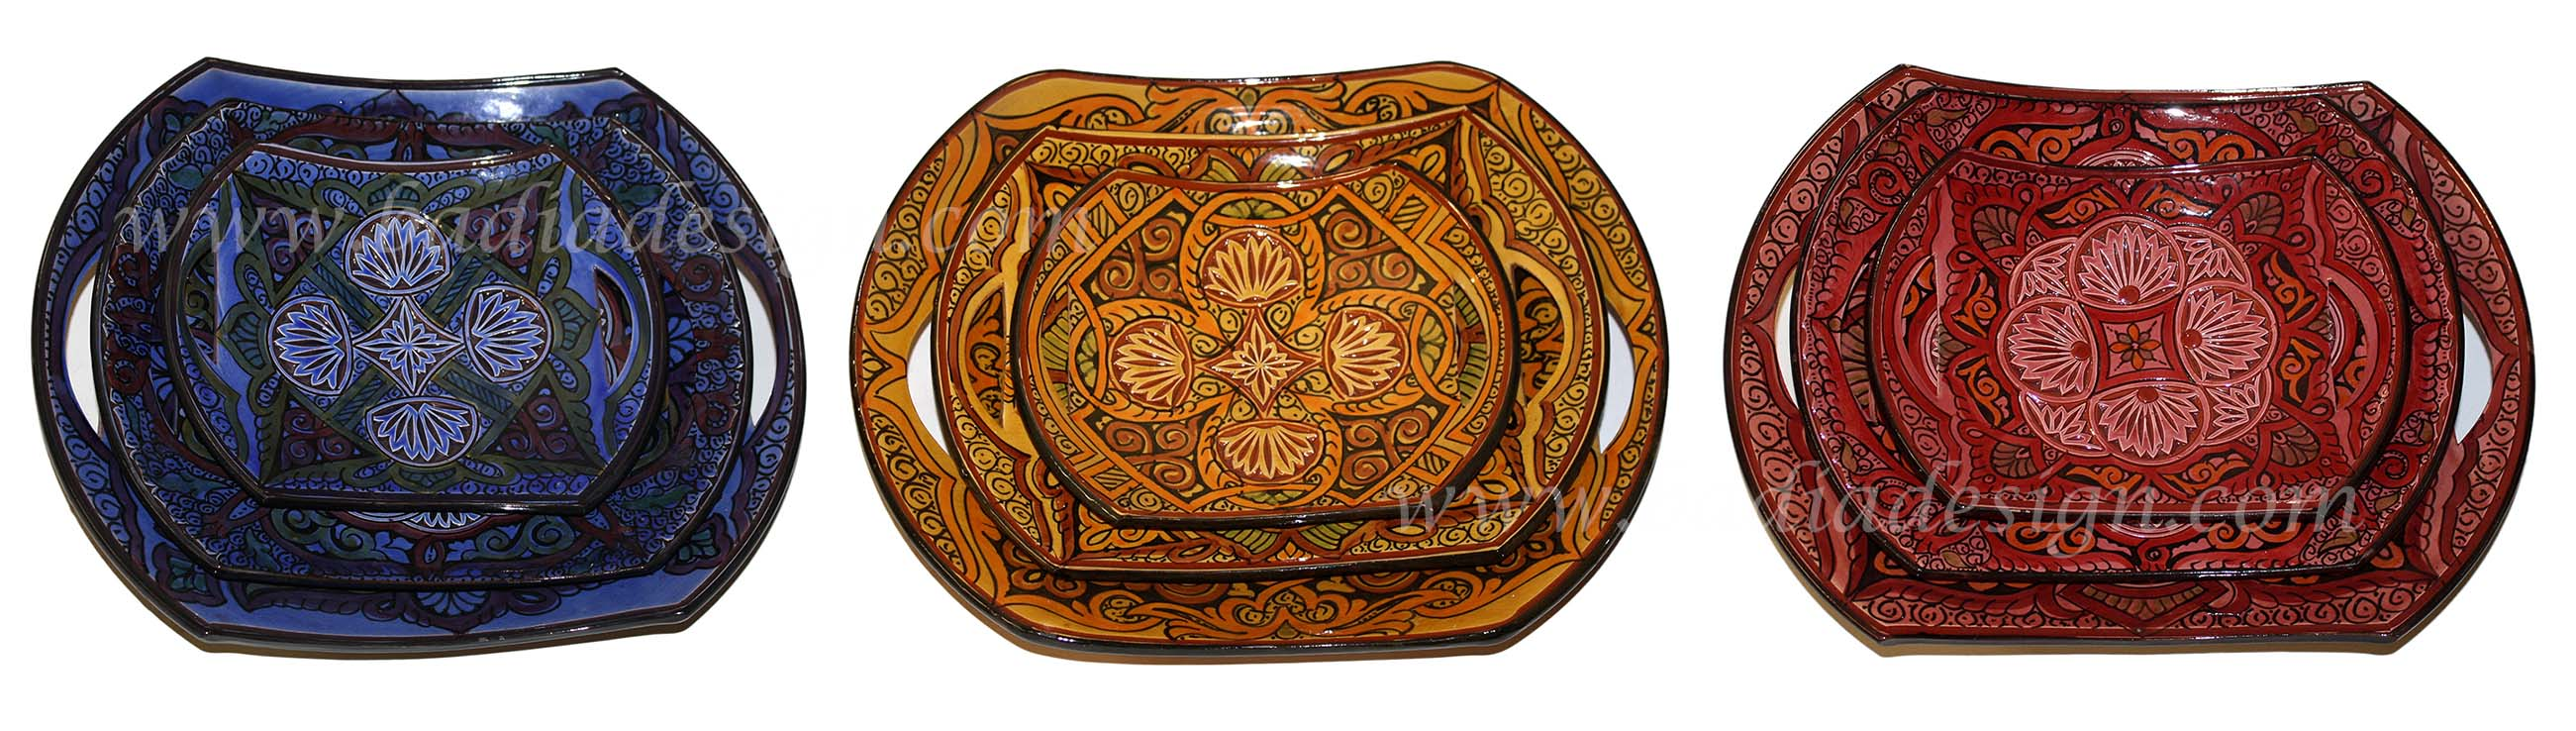 moroccan-hand-painted-plate-cer-p002.jpg